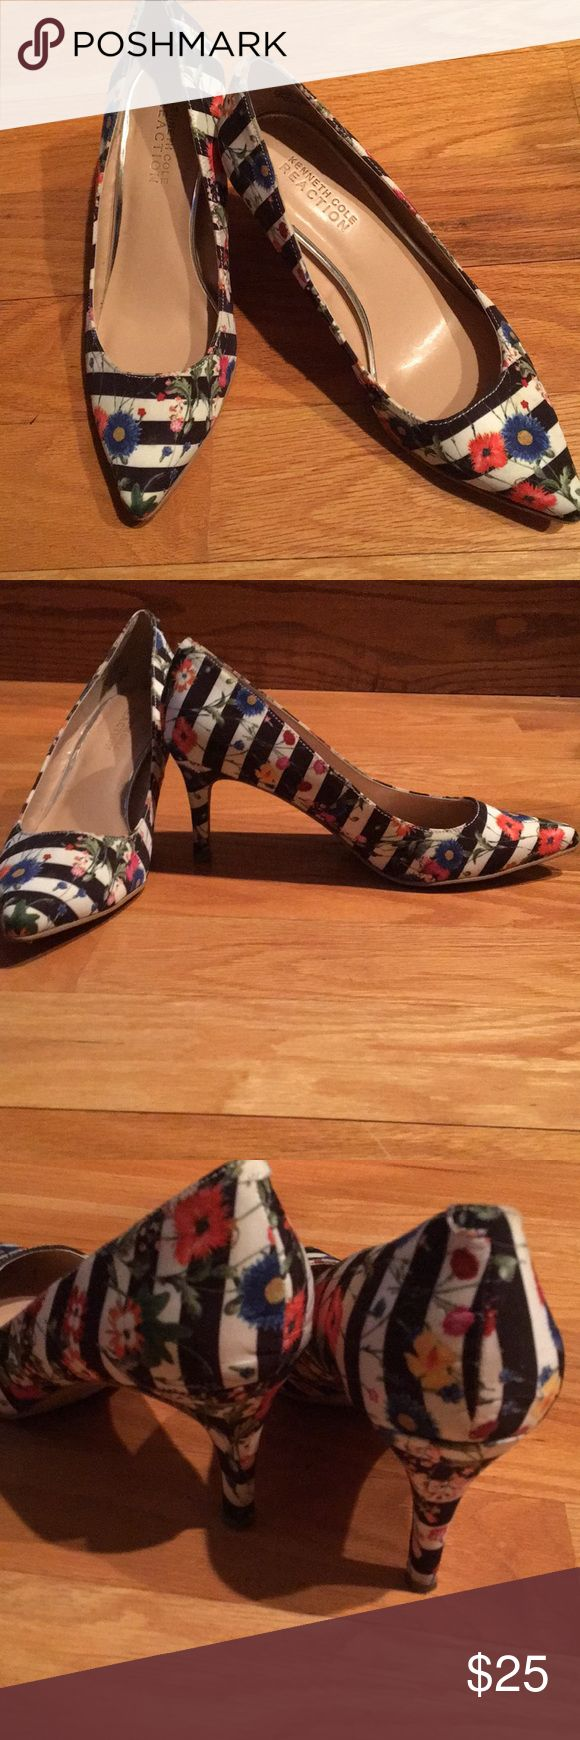 Floral striped pumps These trendy mixed patterned pumps are a fun way to spice up your wardrobe! Barely worn. Kenneth Cole Shoes Heels